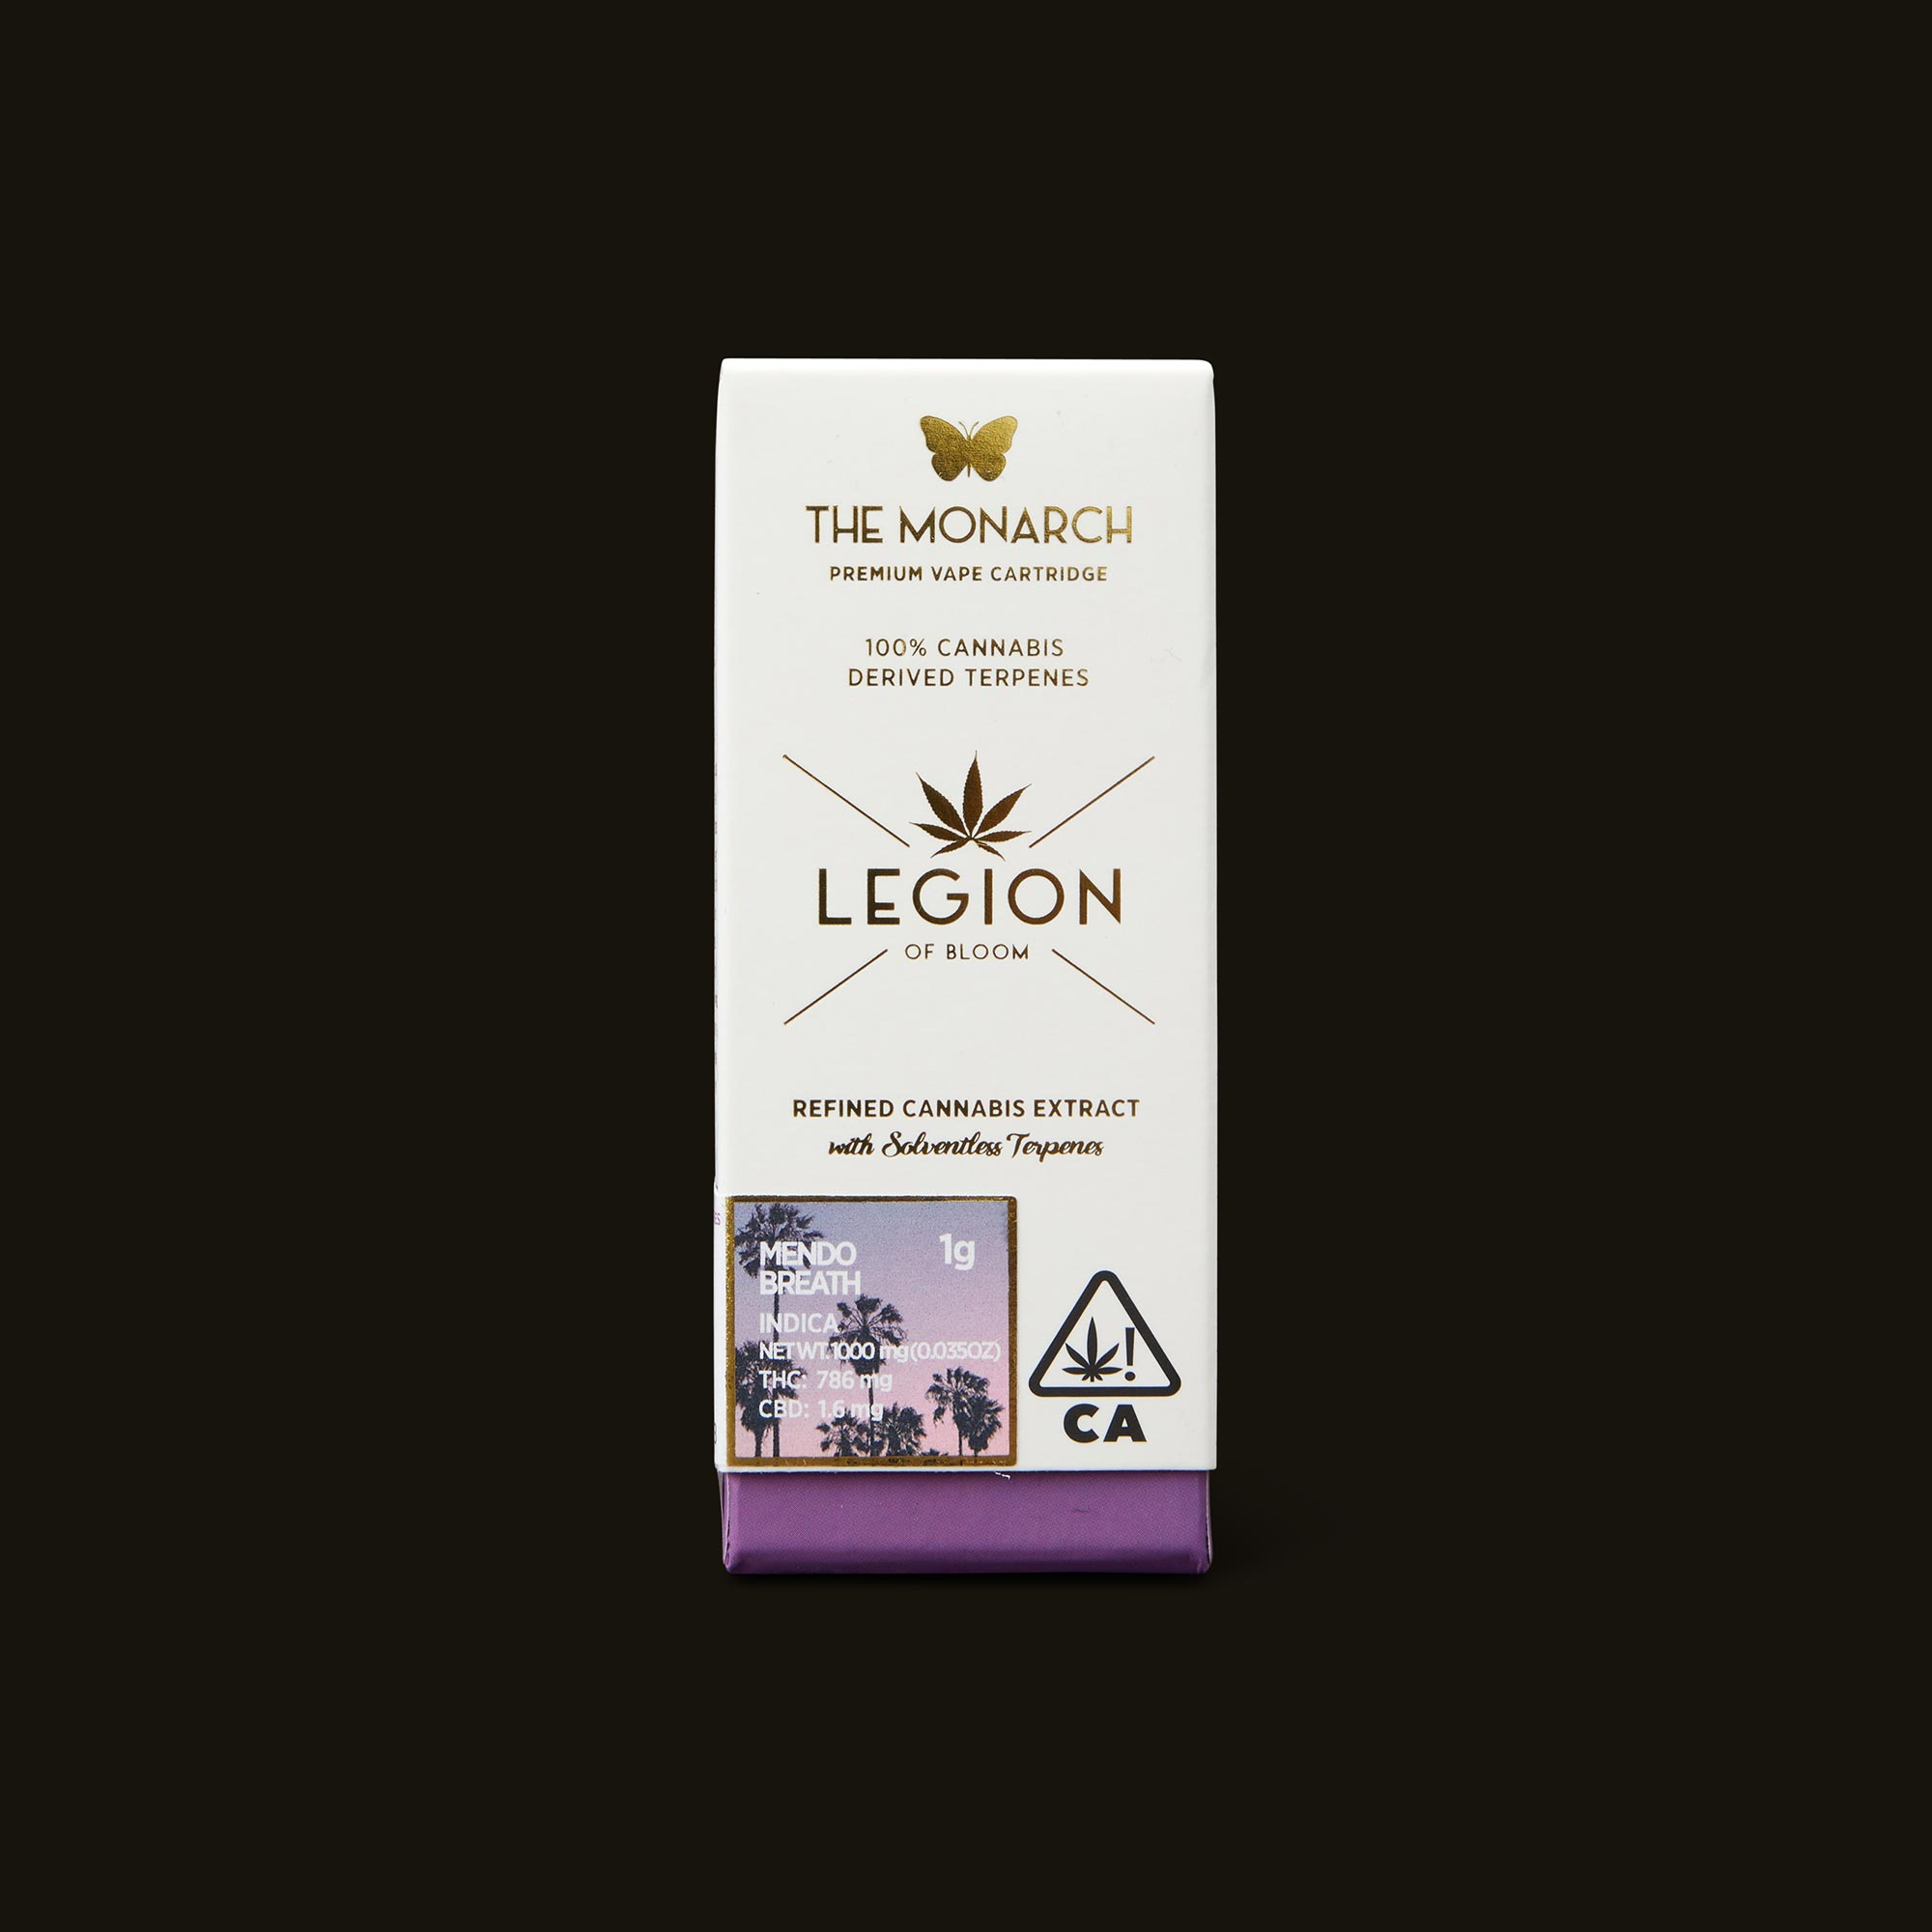 Legion of Bloom Mendo Breath Monarch Front Packaging